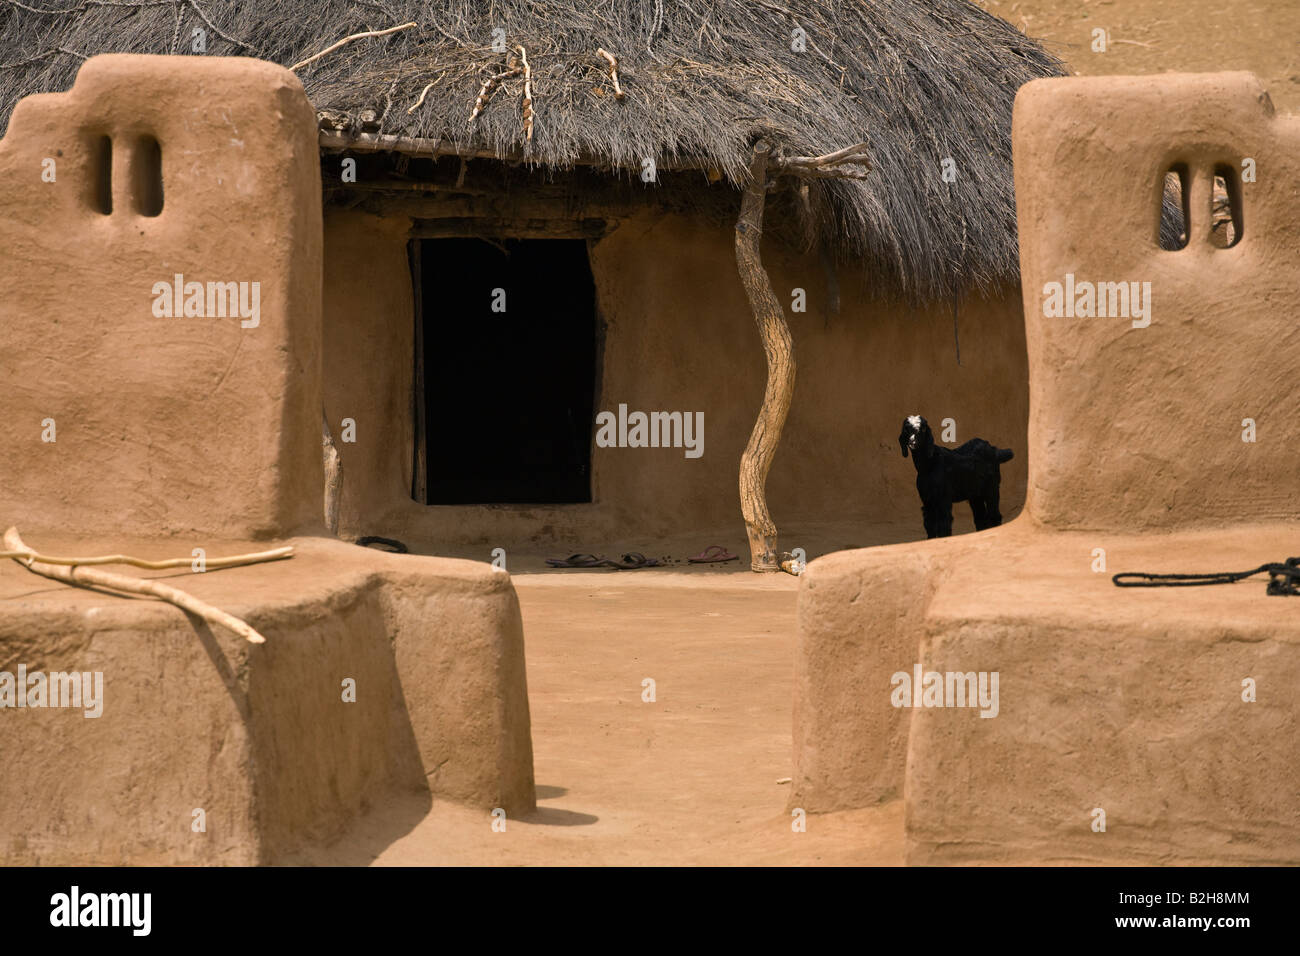 A classic mud house with a goat in the village in the thar desert near jaisalmer